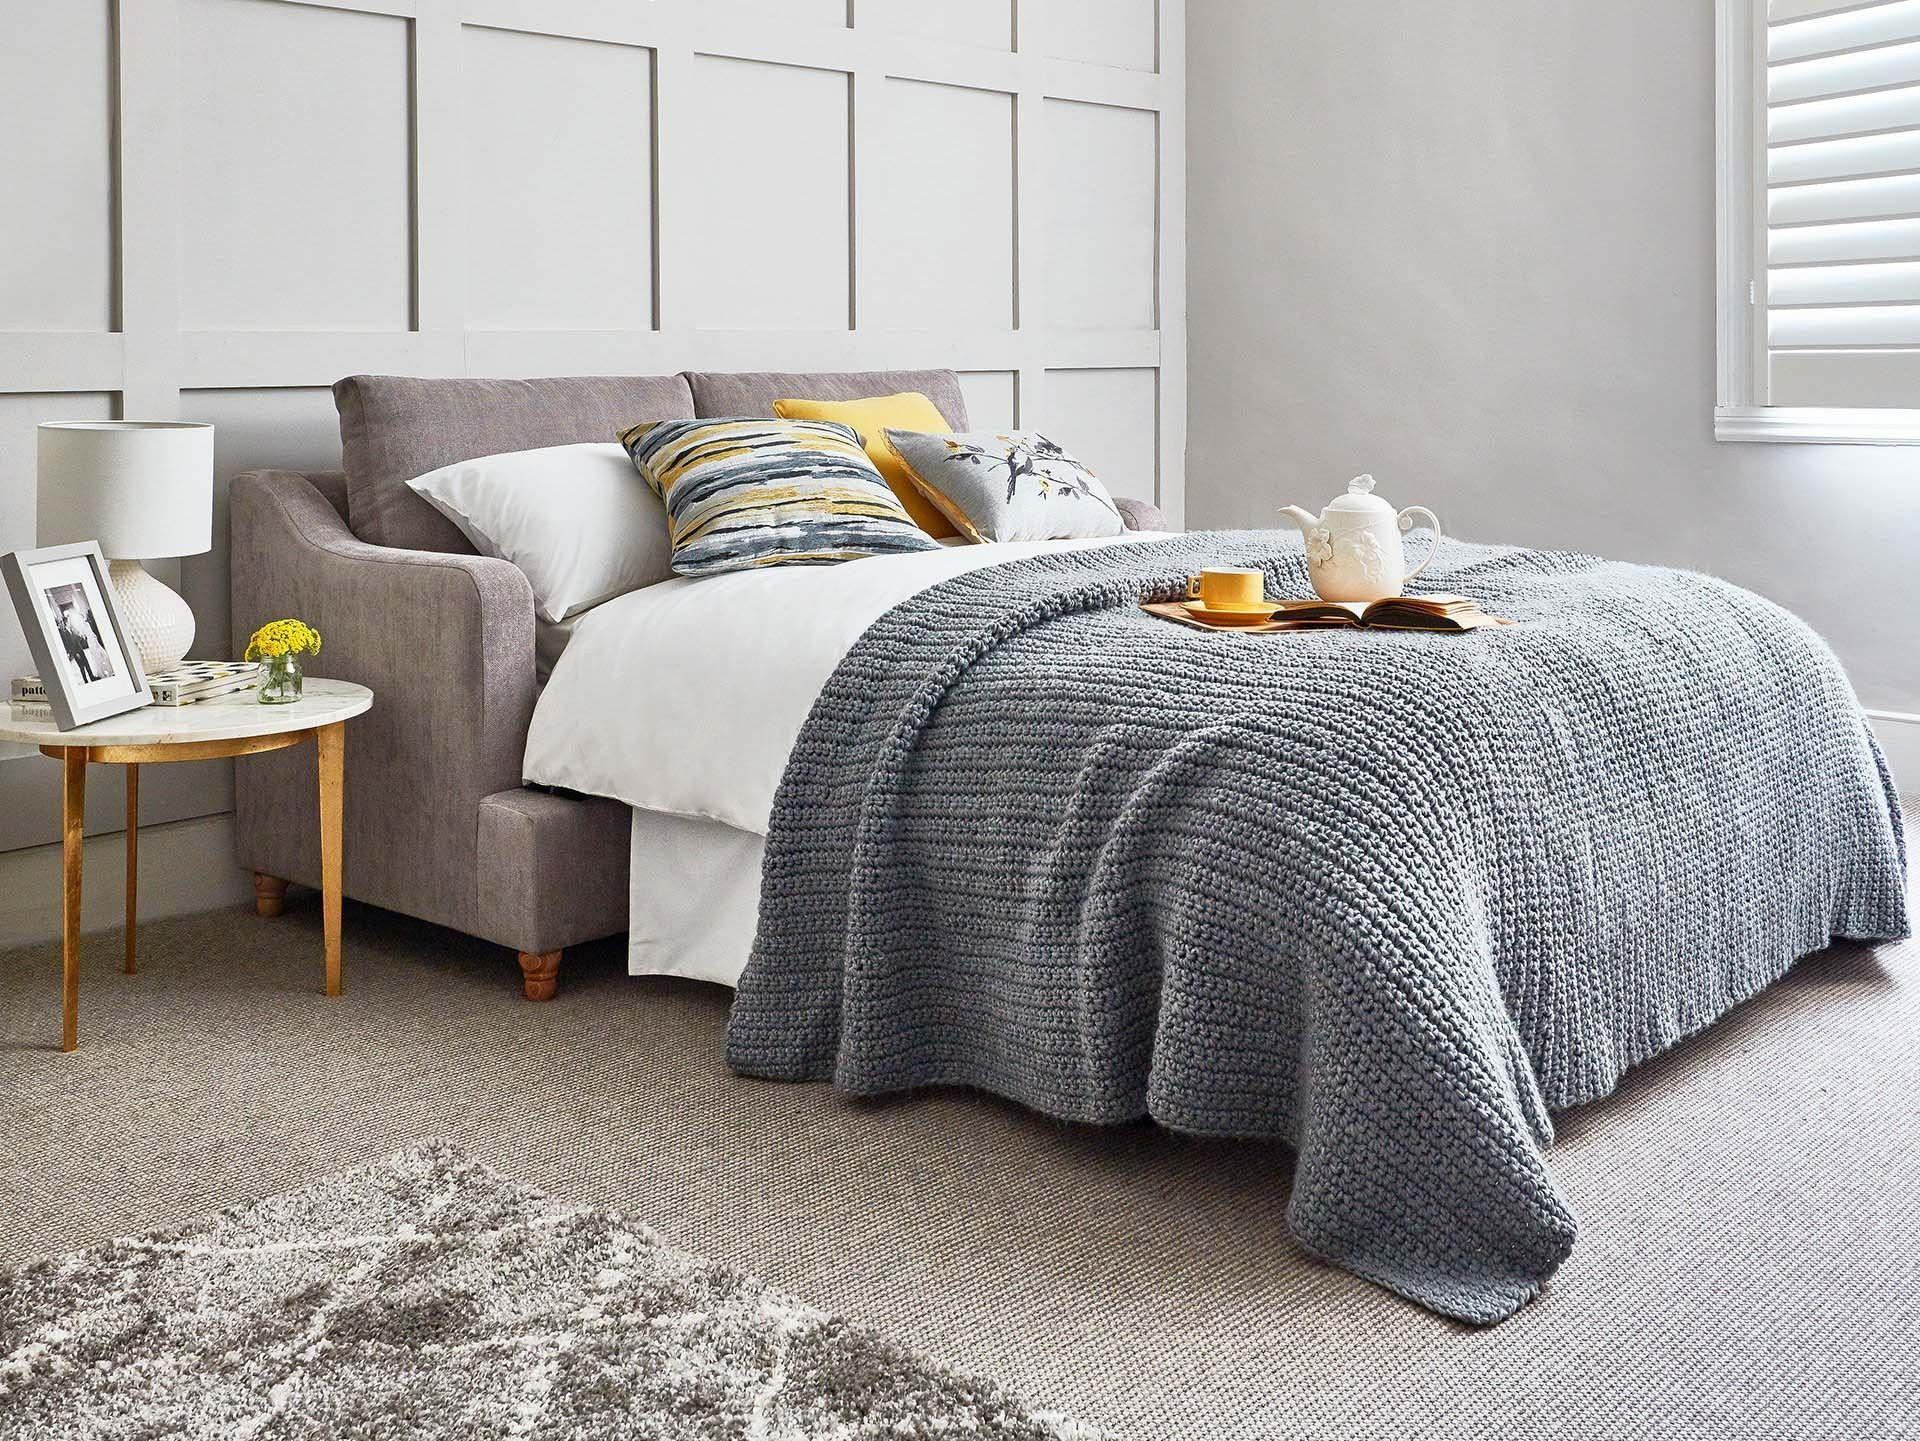 The Atworth Sofa Bed Sofa bed